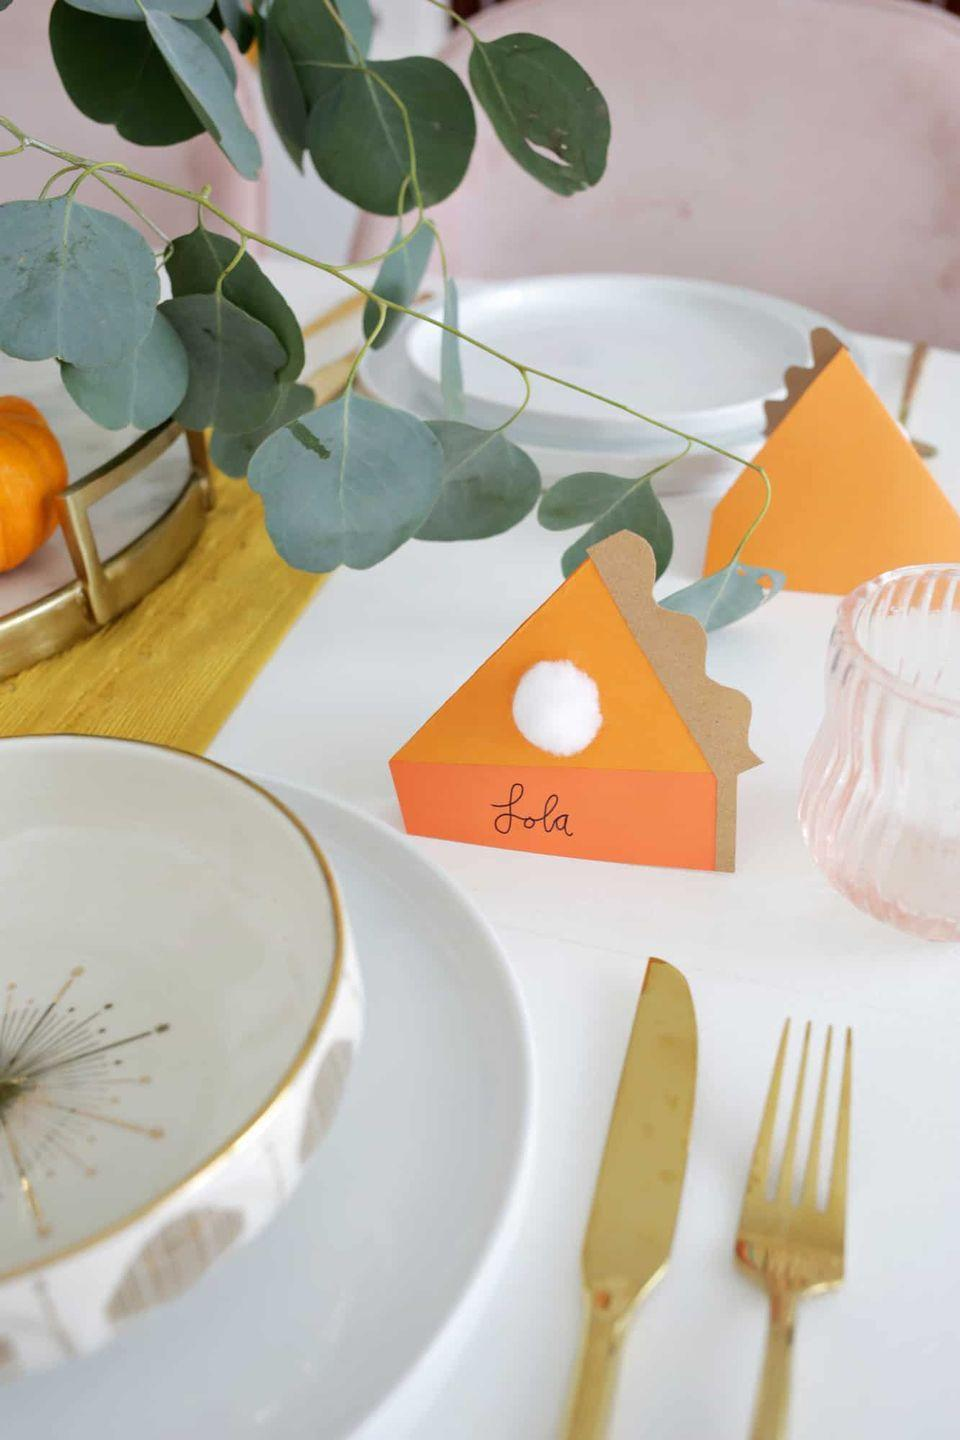 "<p>If you have a big group gathering, these pumpkin pie name cards will let them know exactly where to sit...and will get them ready for dessert. All it takes is construction paper, glue, and cotton balls, according to <a href=""https://abeautifulmess.com/easy-pumpkin-pie-place-cards/"" rel=""nofollow noopener"" target=""_blank"" data-ylk=""slk:A Beautiful Mess"" class=""link rapid-noclick-resp"">A Beautiful Mess</a>.</p><p><a class=""link rapid-noclick-resp"" href=""https://personalgiftsetc.com/collections/craft-supplies/products/cotton-pom-pom"" rel=""nofollow noopener"" target=""_blank"" data-ylk=""slk:BUY NOW"">BUY NOW</a> <em><strong>Cotton pom pom, $0.35</strong></em></p>"